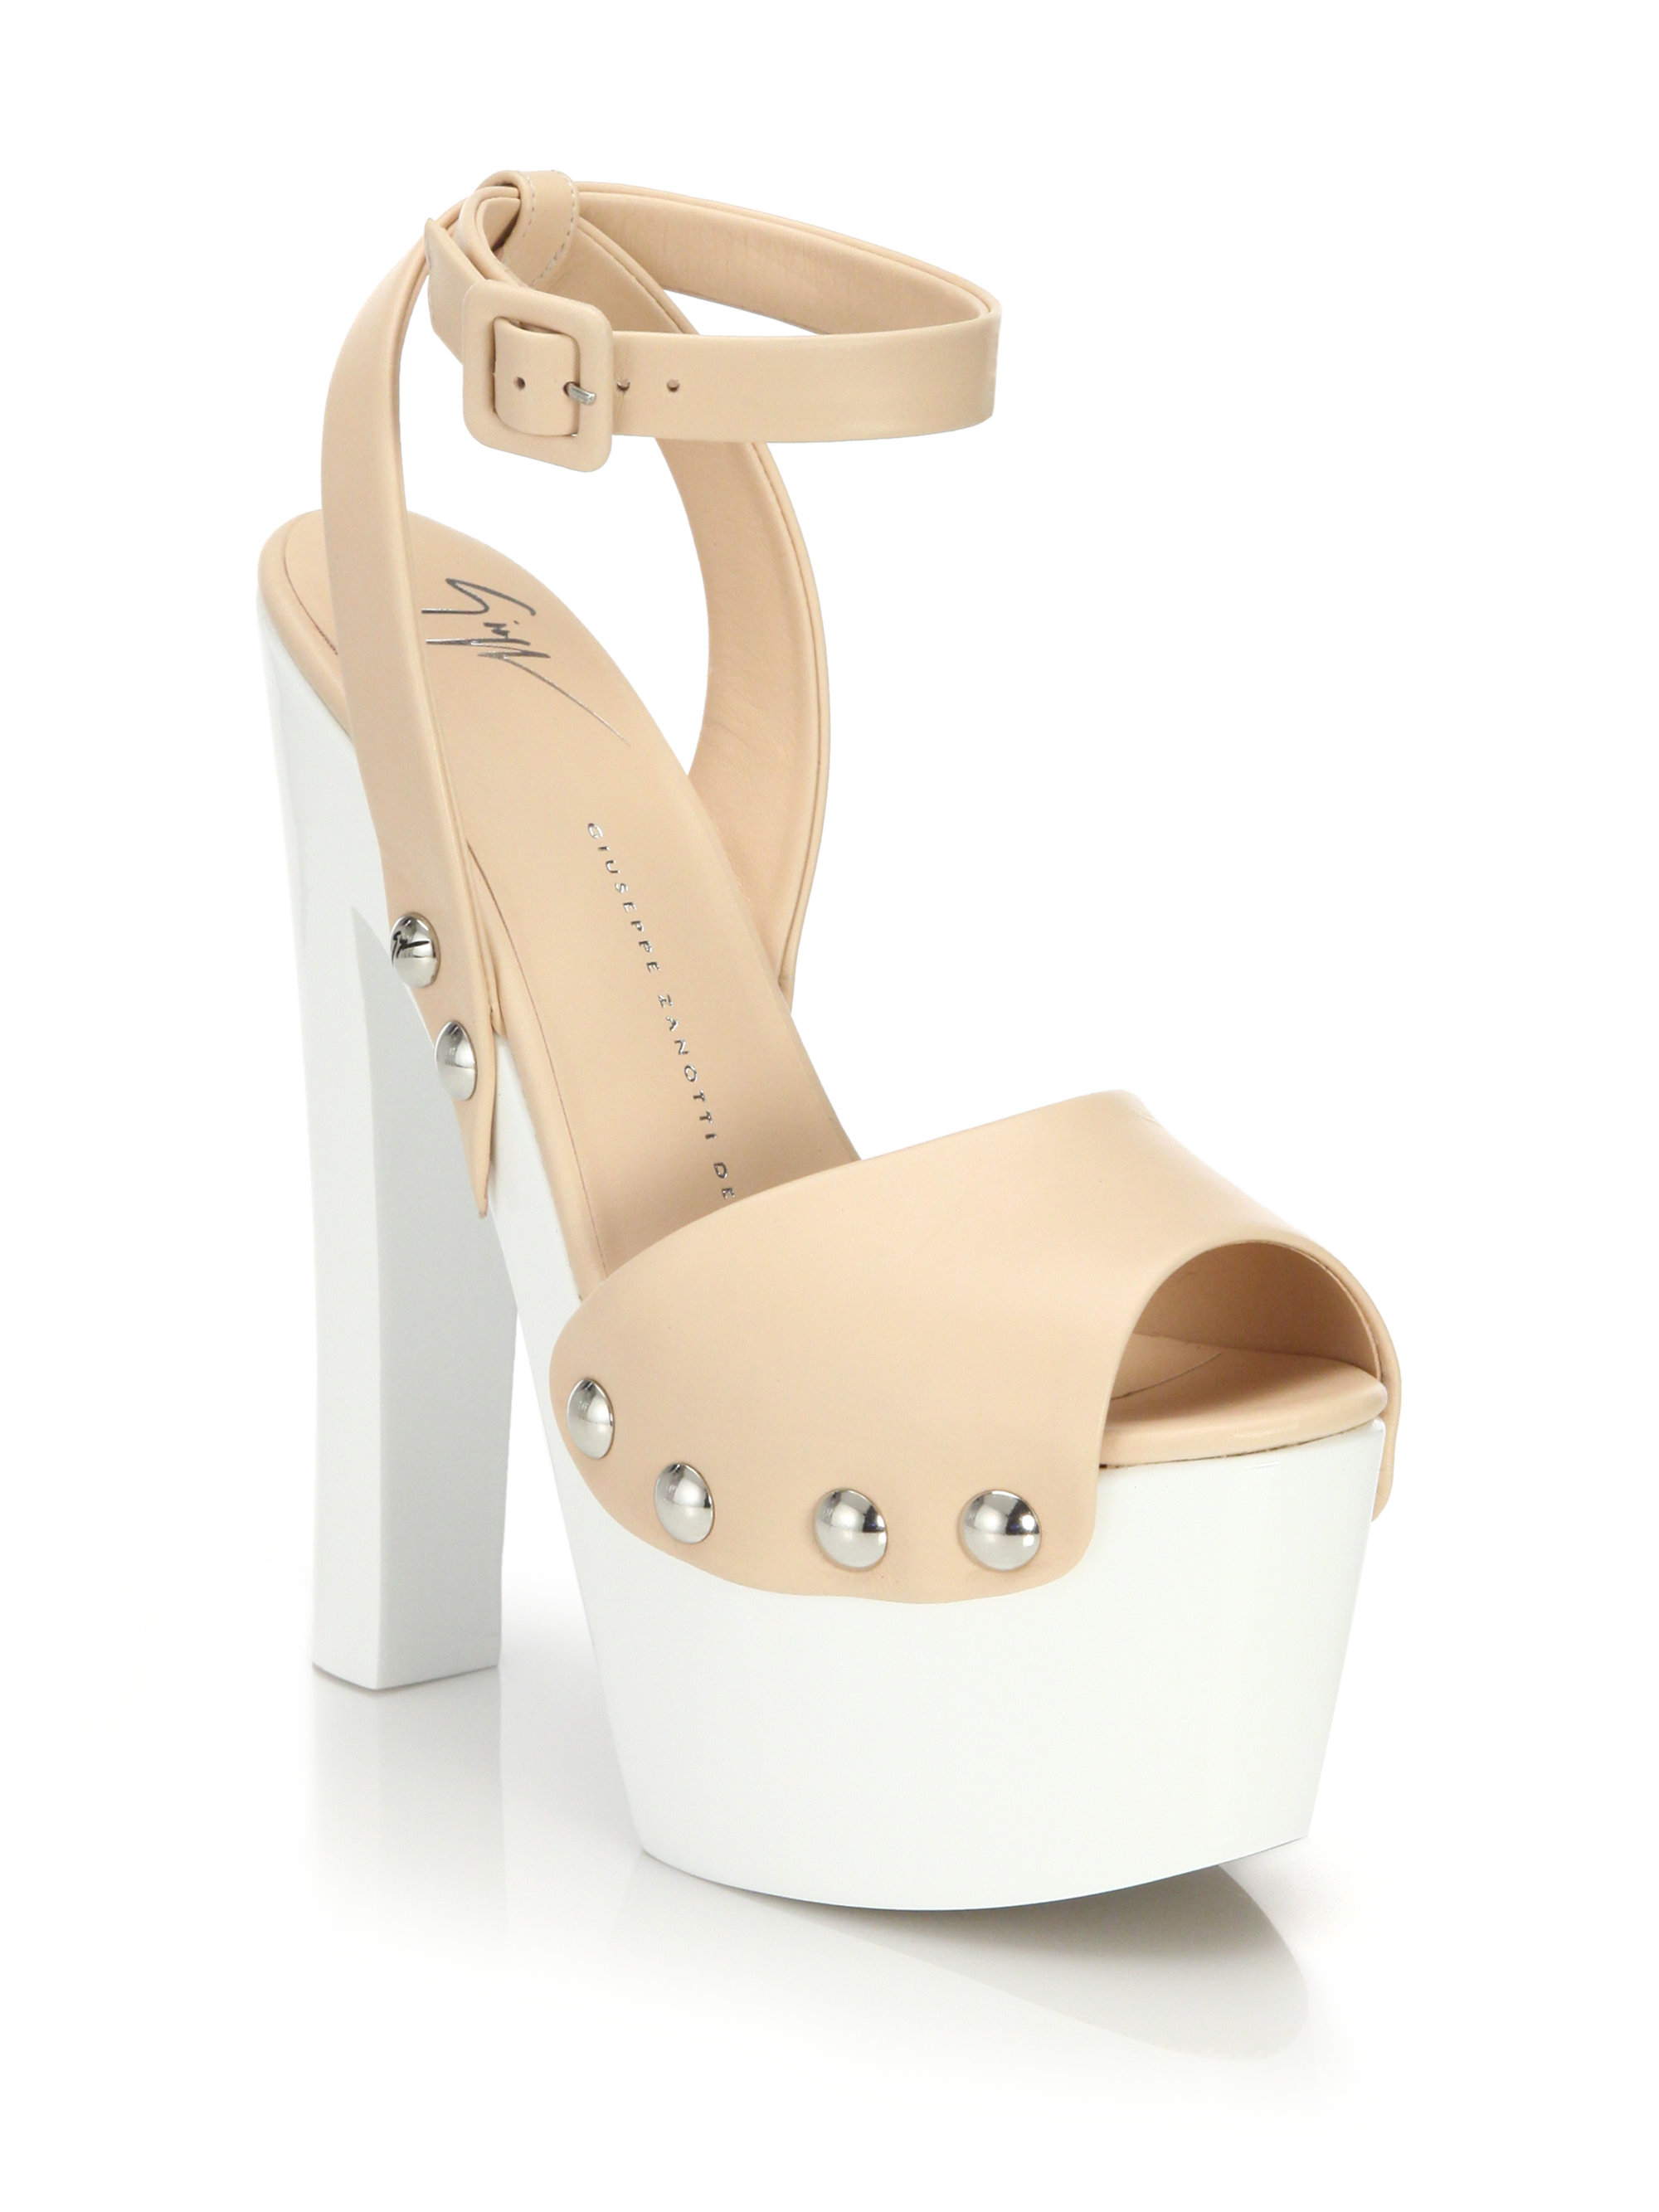 Giuseppe Zanotti Leather Clog Platform Sandals In Natural